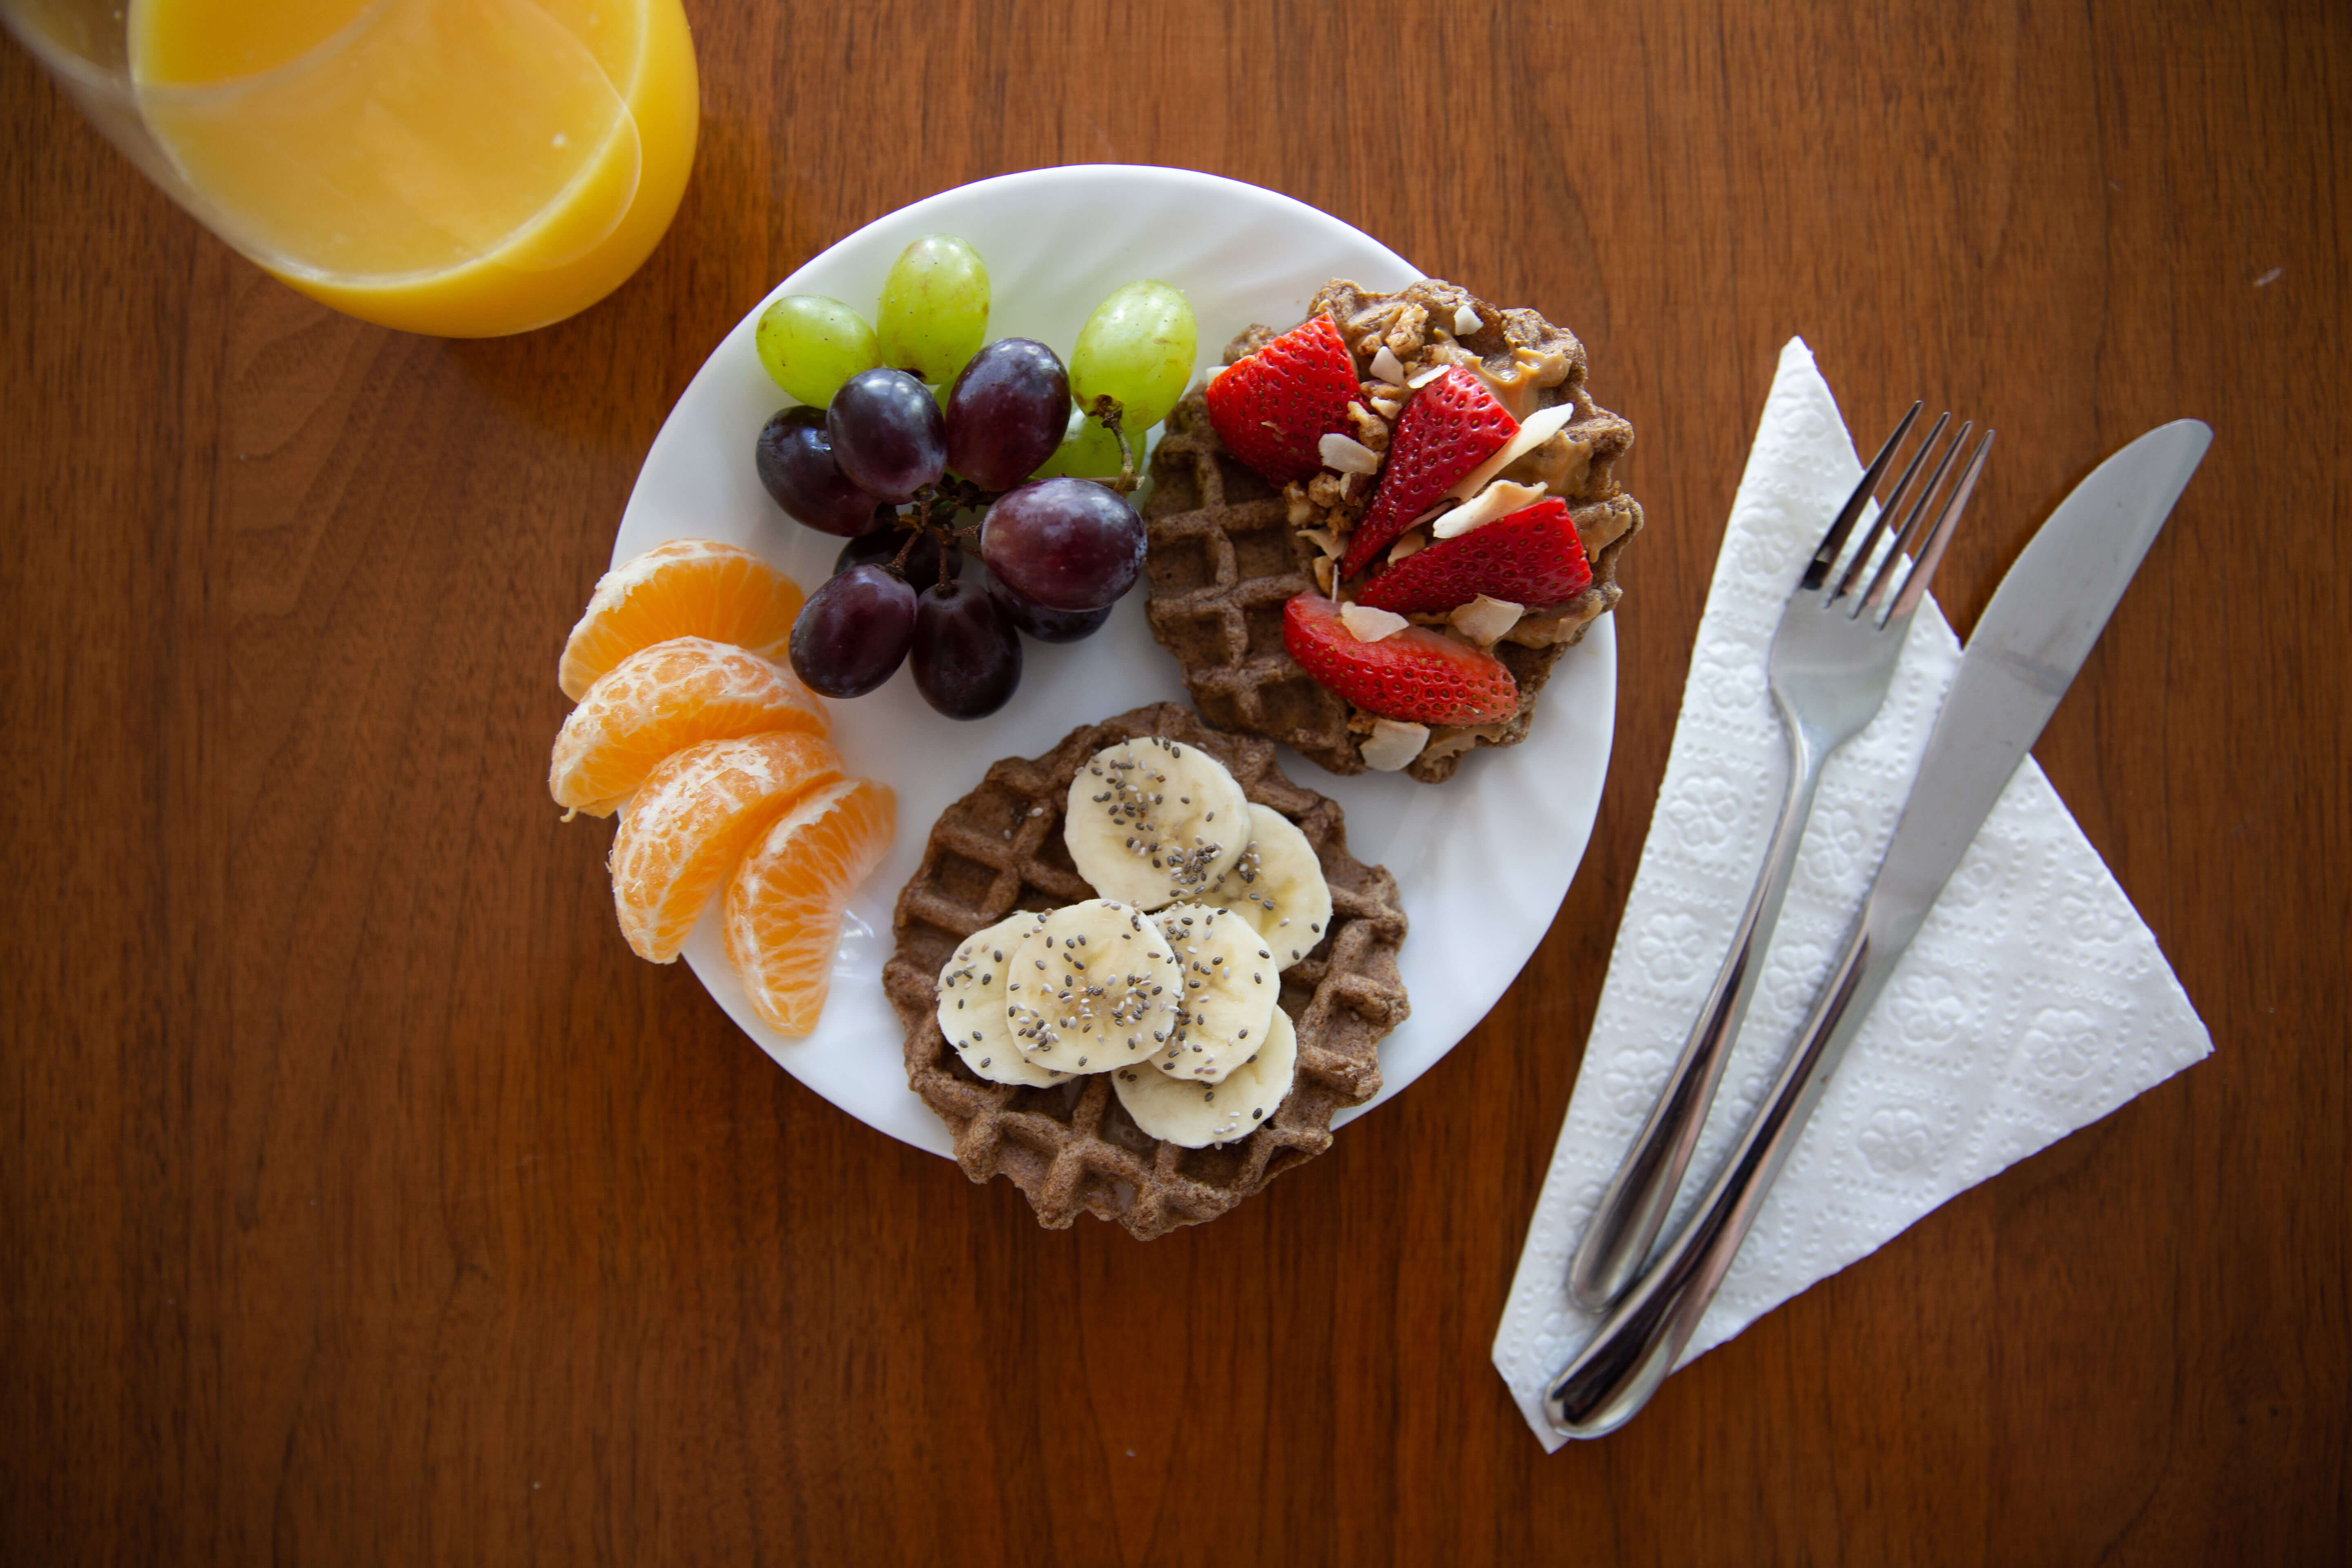 Breakfast picture of waffles, fruit, OJ, and utensils